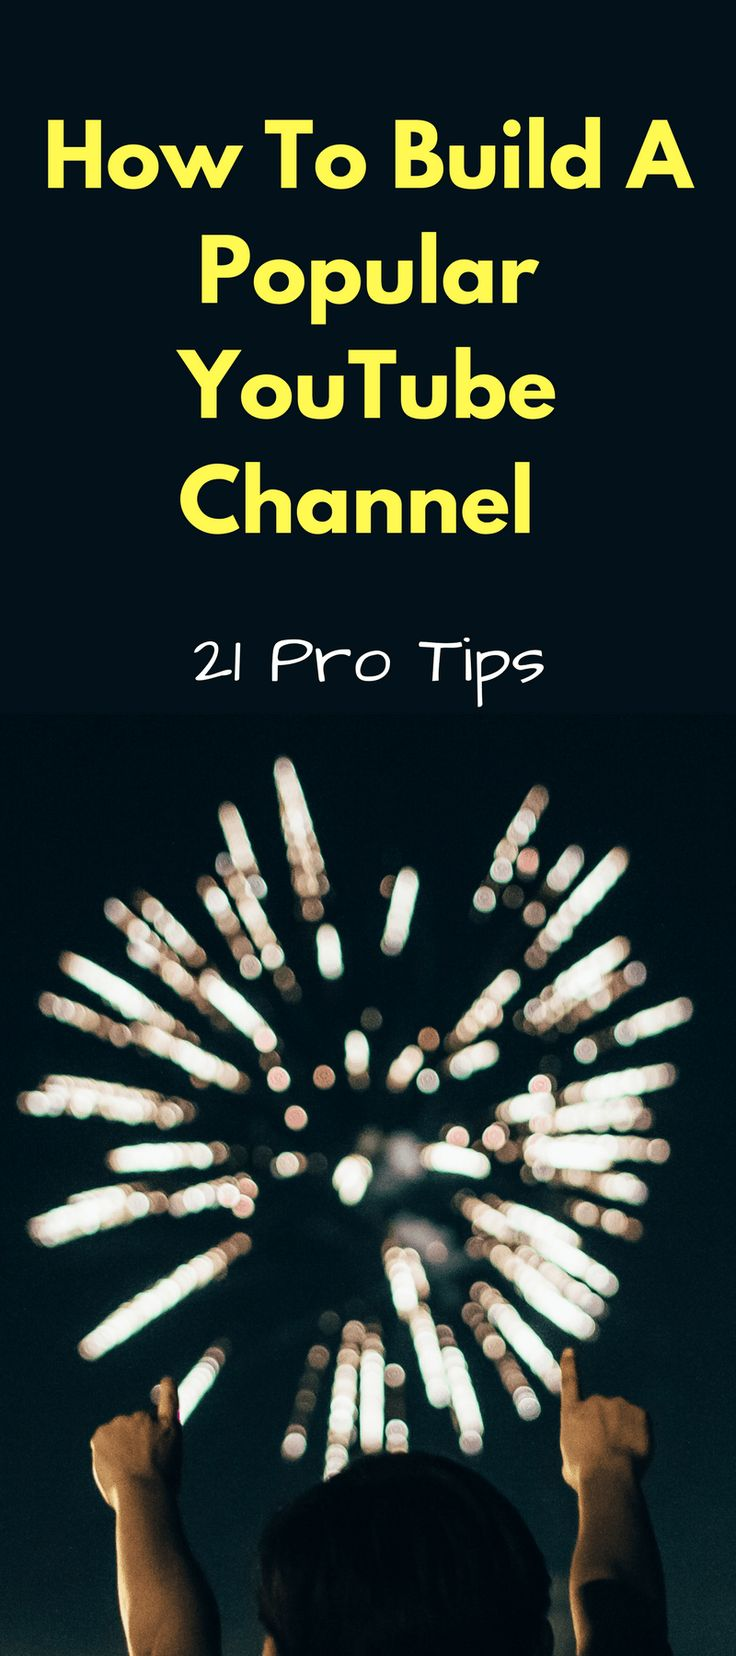 Build a popular YouTube Channel ? Entirely possible. Use these 21 tips the pros have used to build popular and profitable channels.